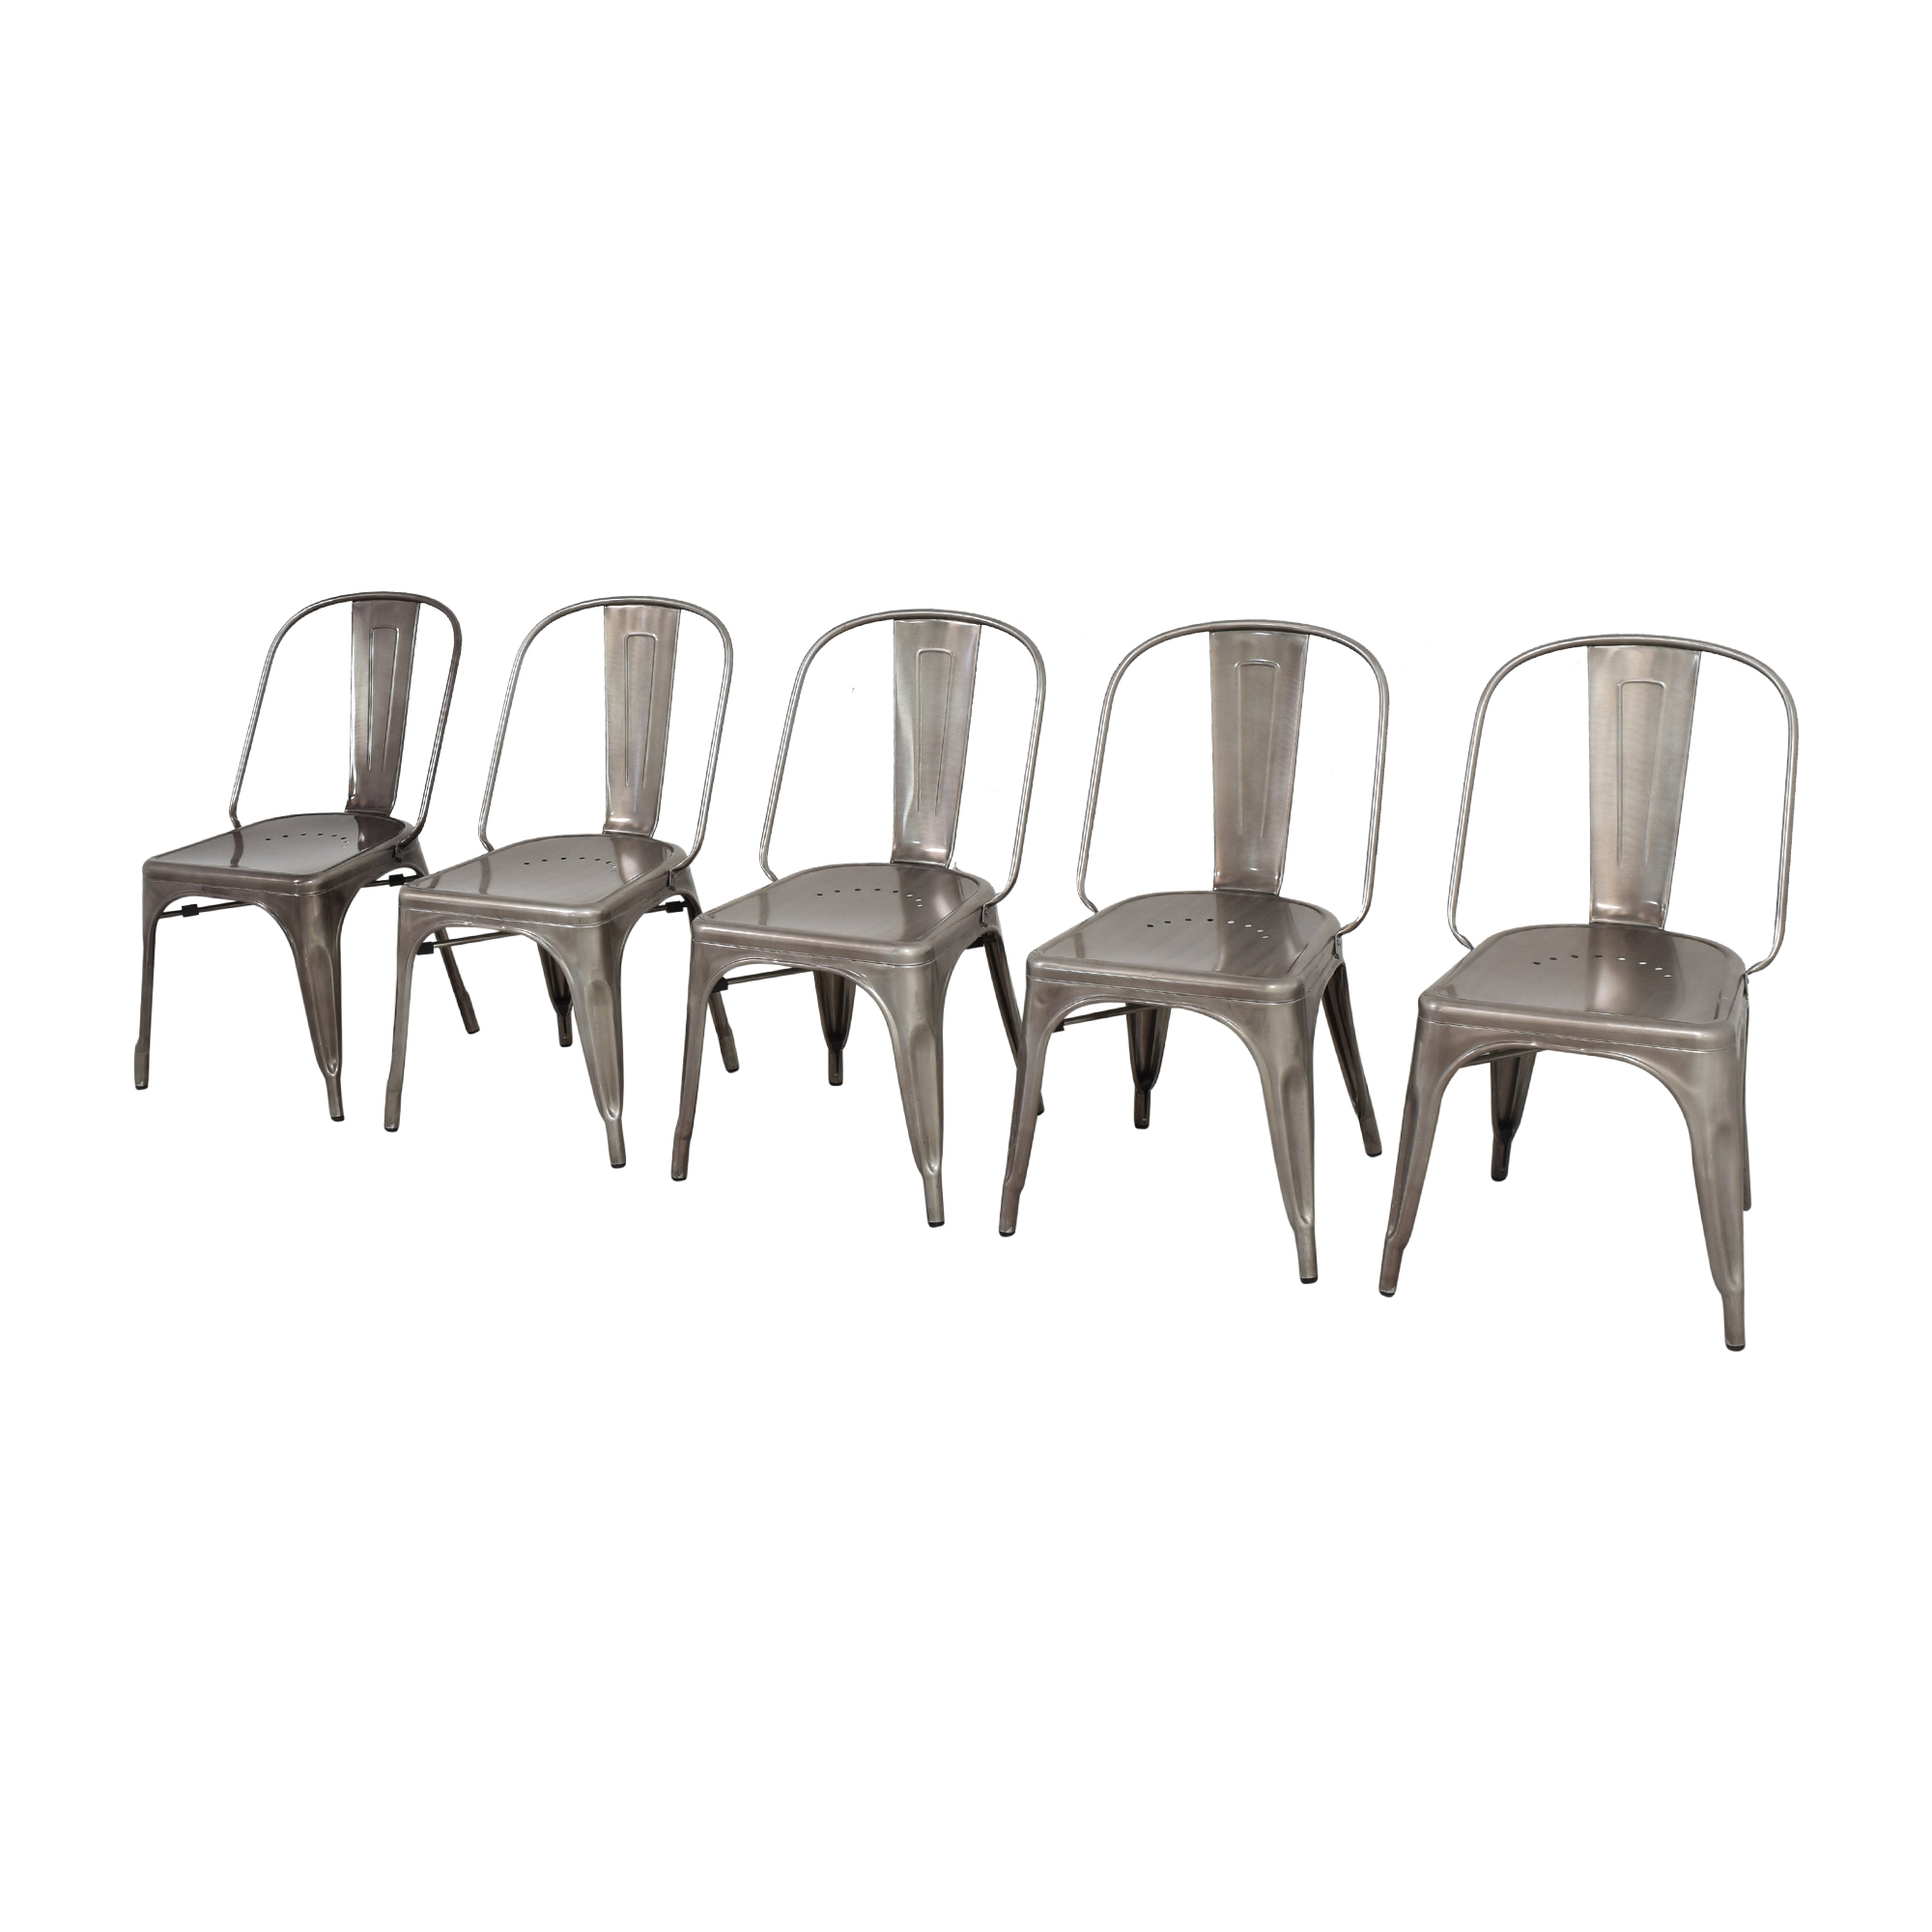 Industry West Industry West Marais AC Chairs Chairs